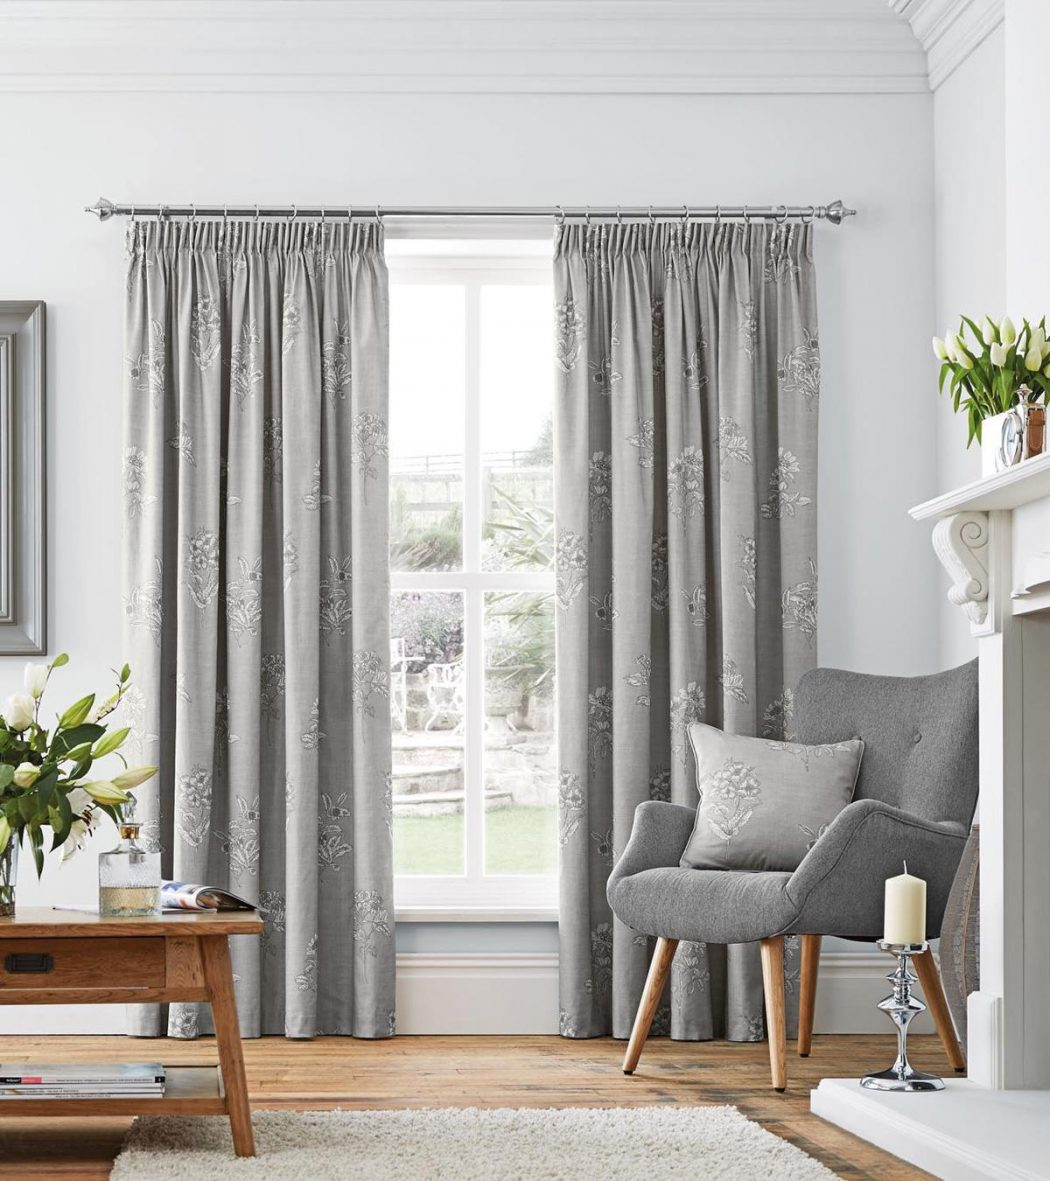 flora-dove-grey 20+ Hottest Curtain Designs for 2018